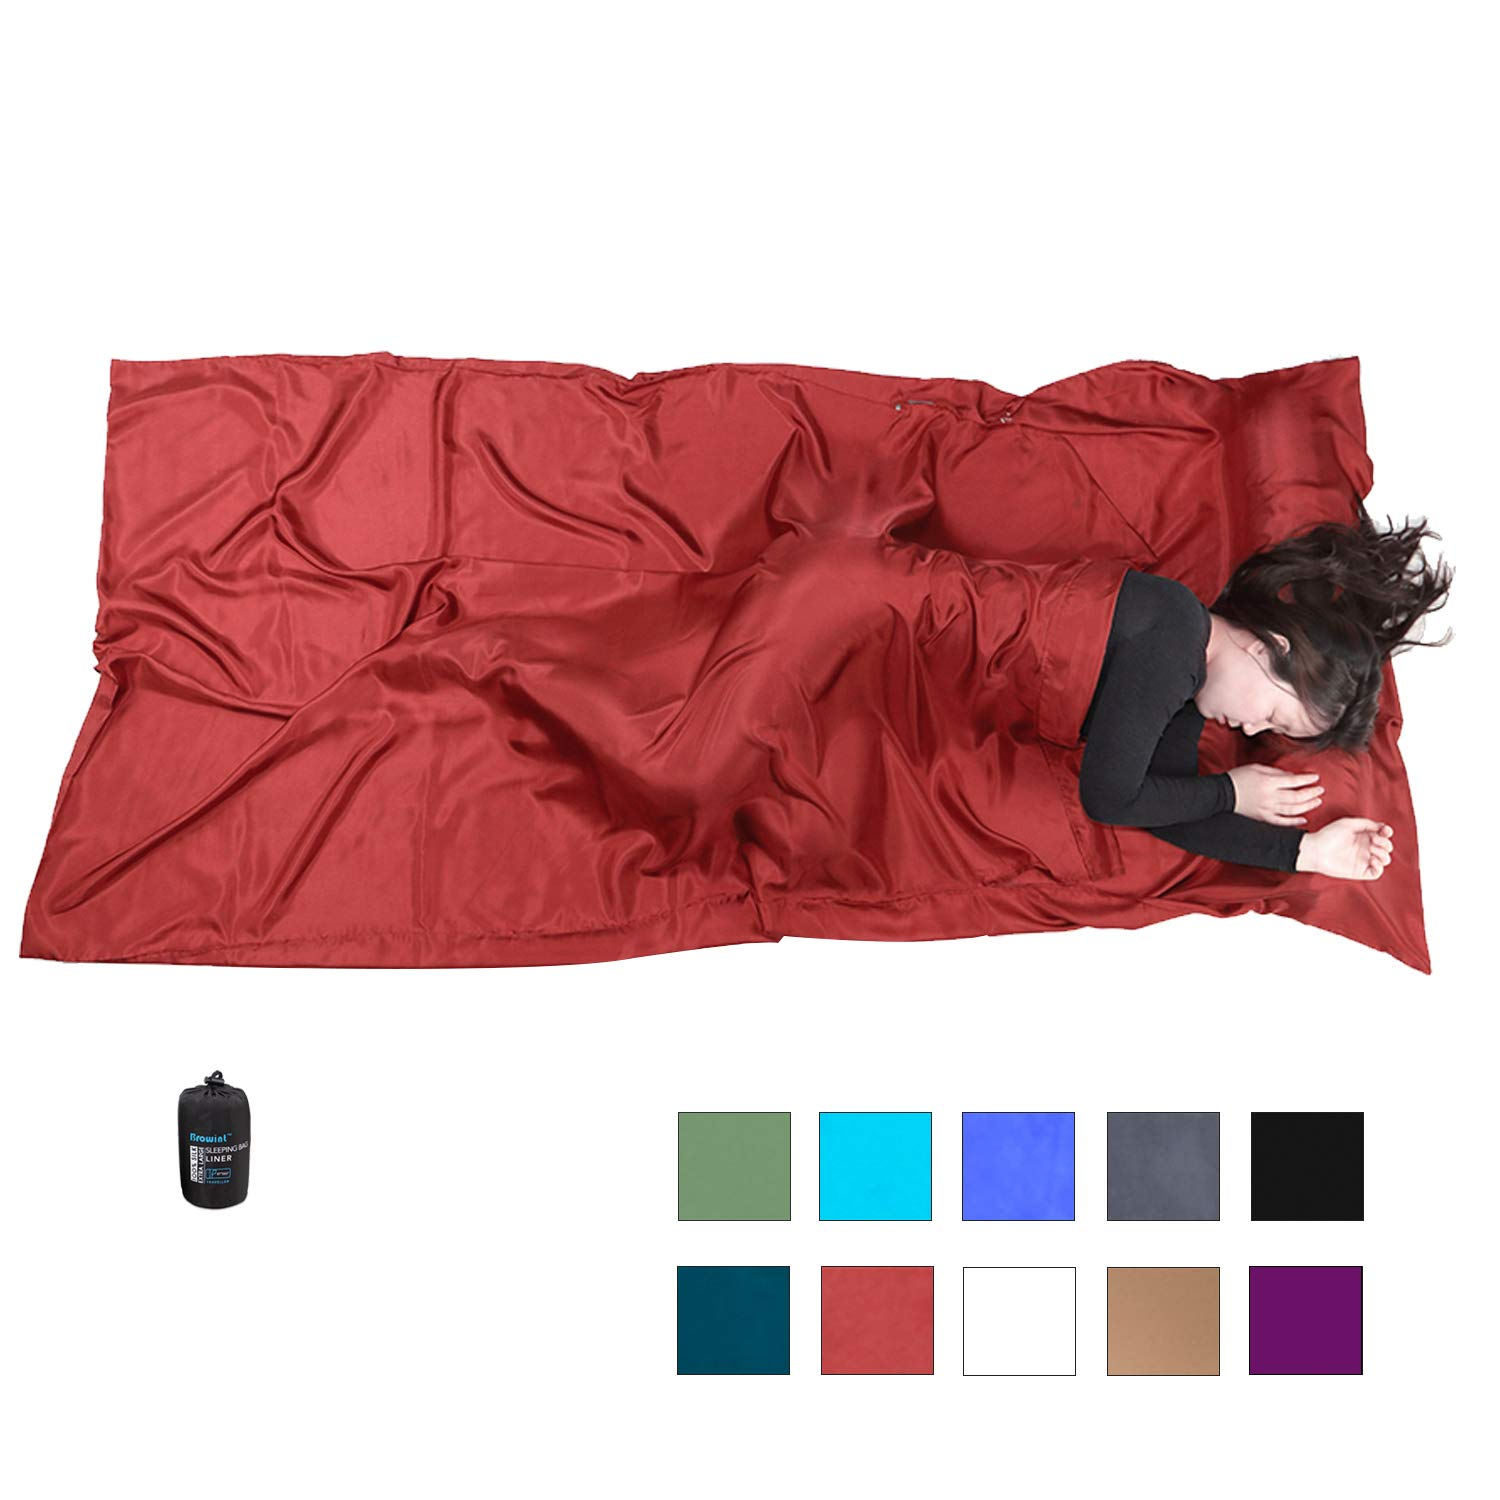 Browint Silk Sleeping Bag Liner, Silk Sleep Sheet, Sack, Extra Wide 87''x43'', Lightweight Travel and Camping Sheet for Hotel, More Colors for Option, Reinforced Gussets, Pillow Pocket by Browint